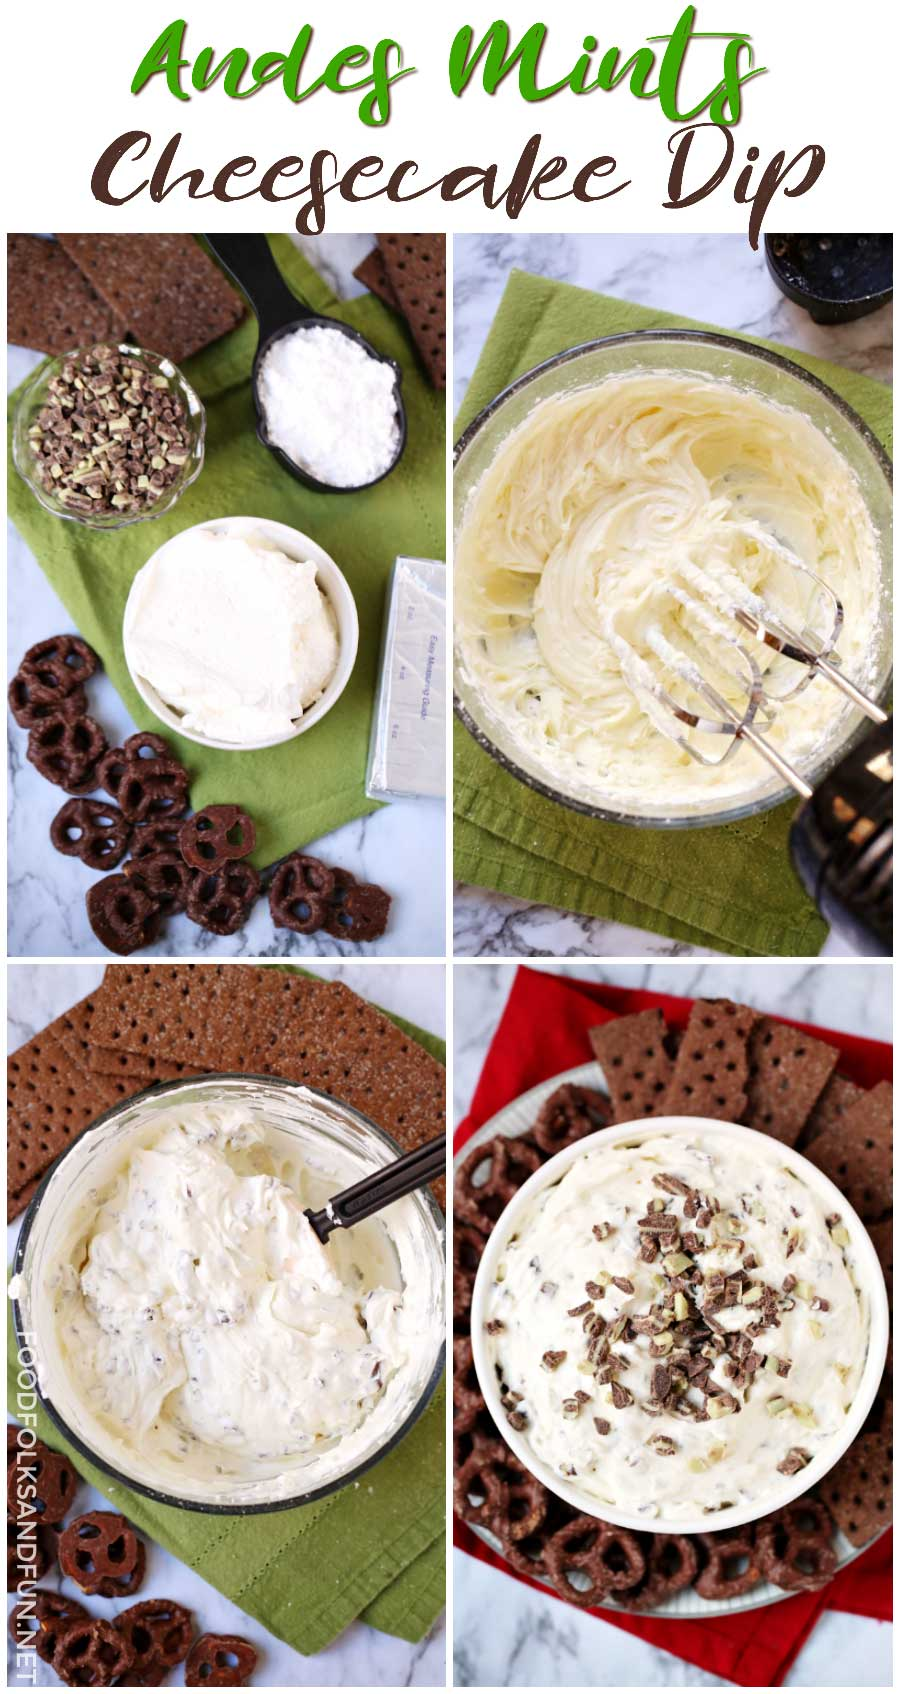 How to Make an easy holiday dessert: Andes Mint Cheesecake Dip